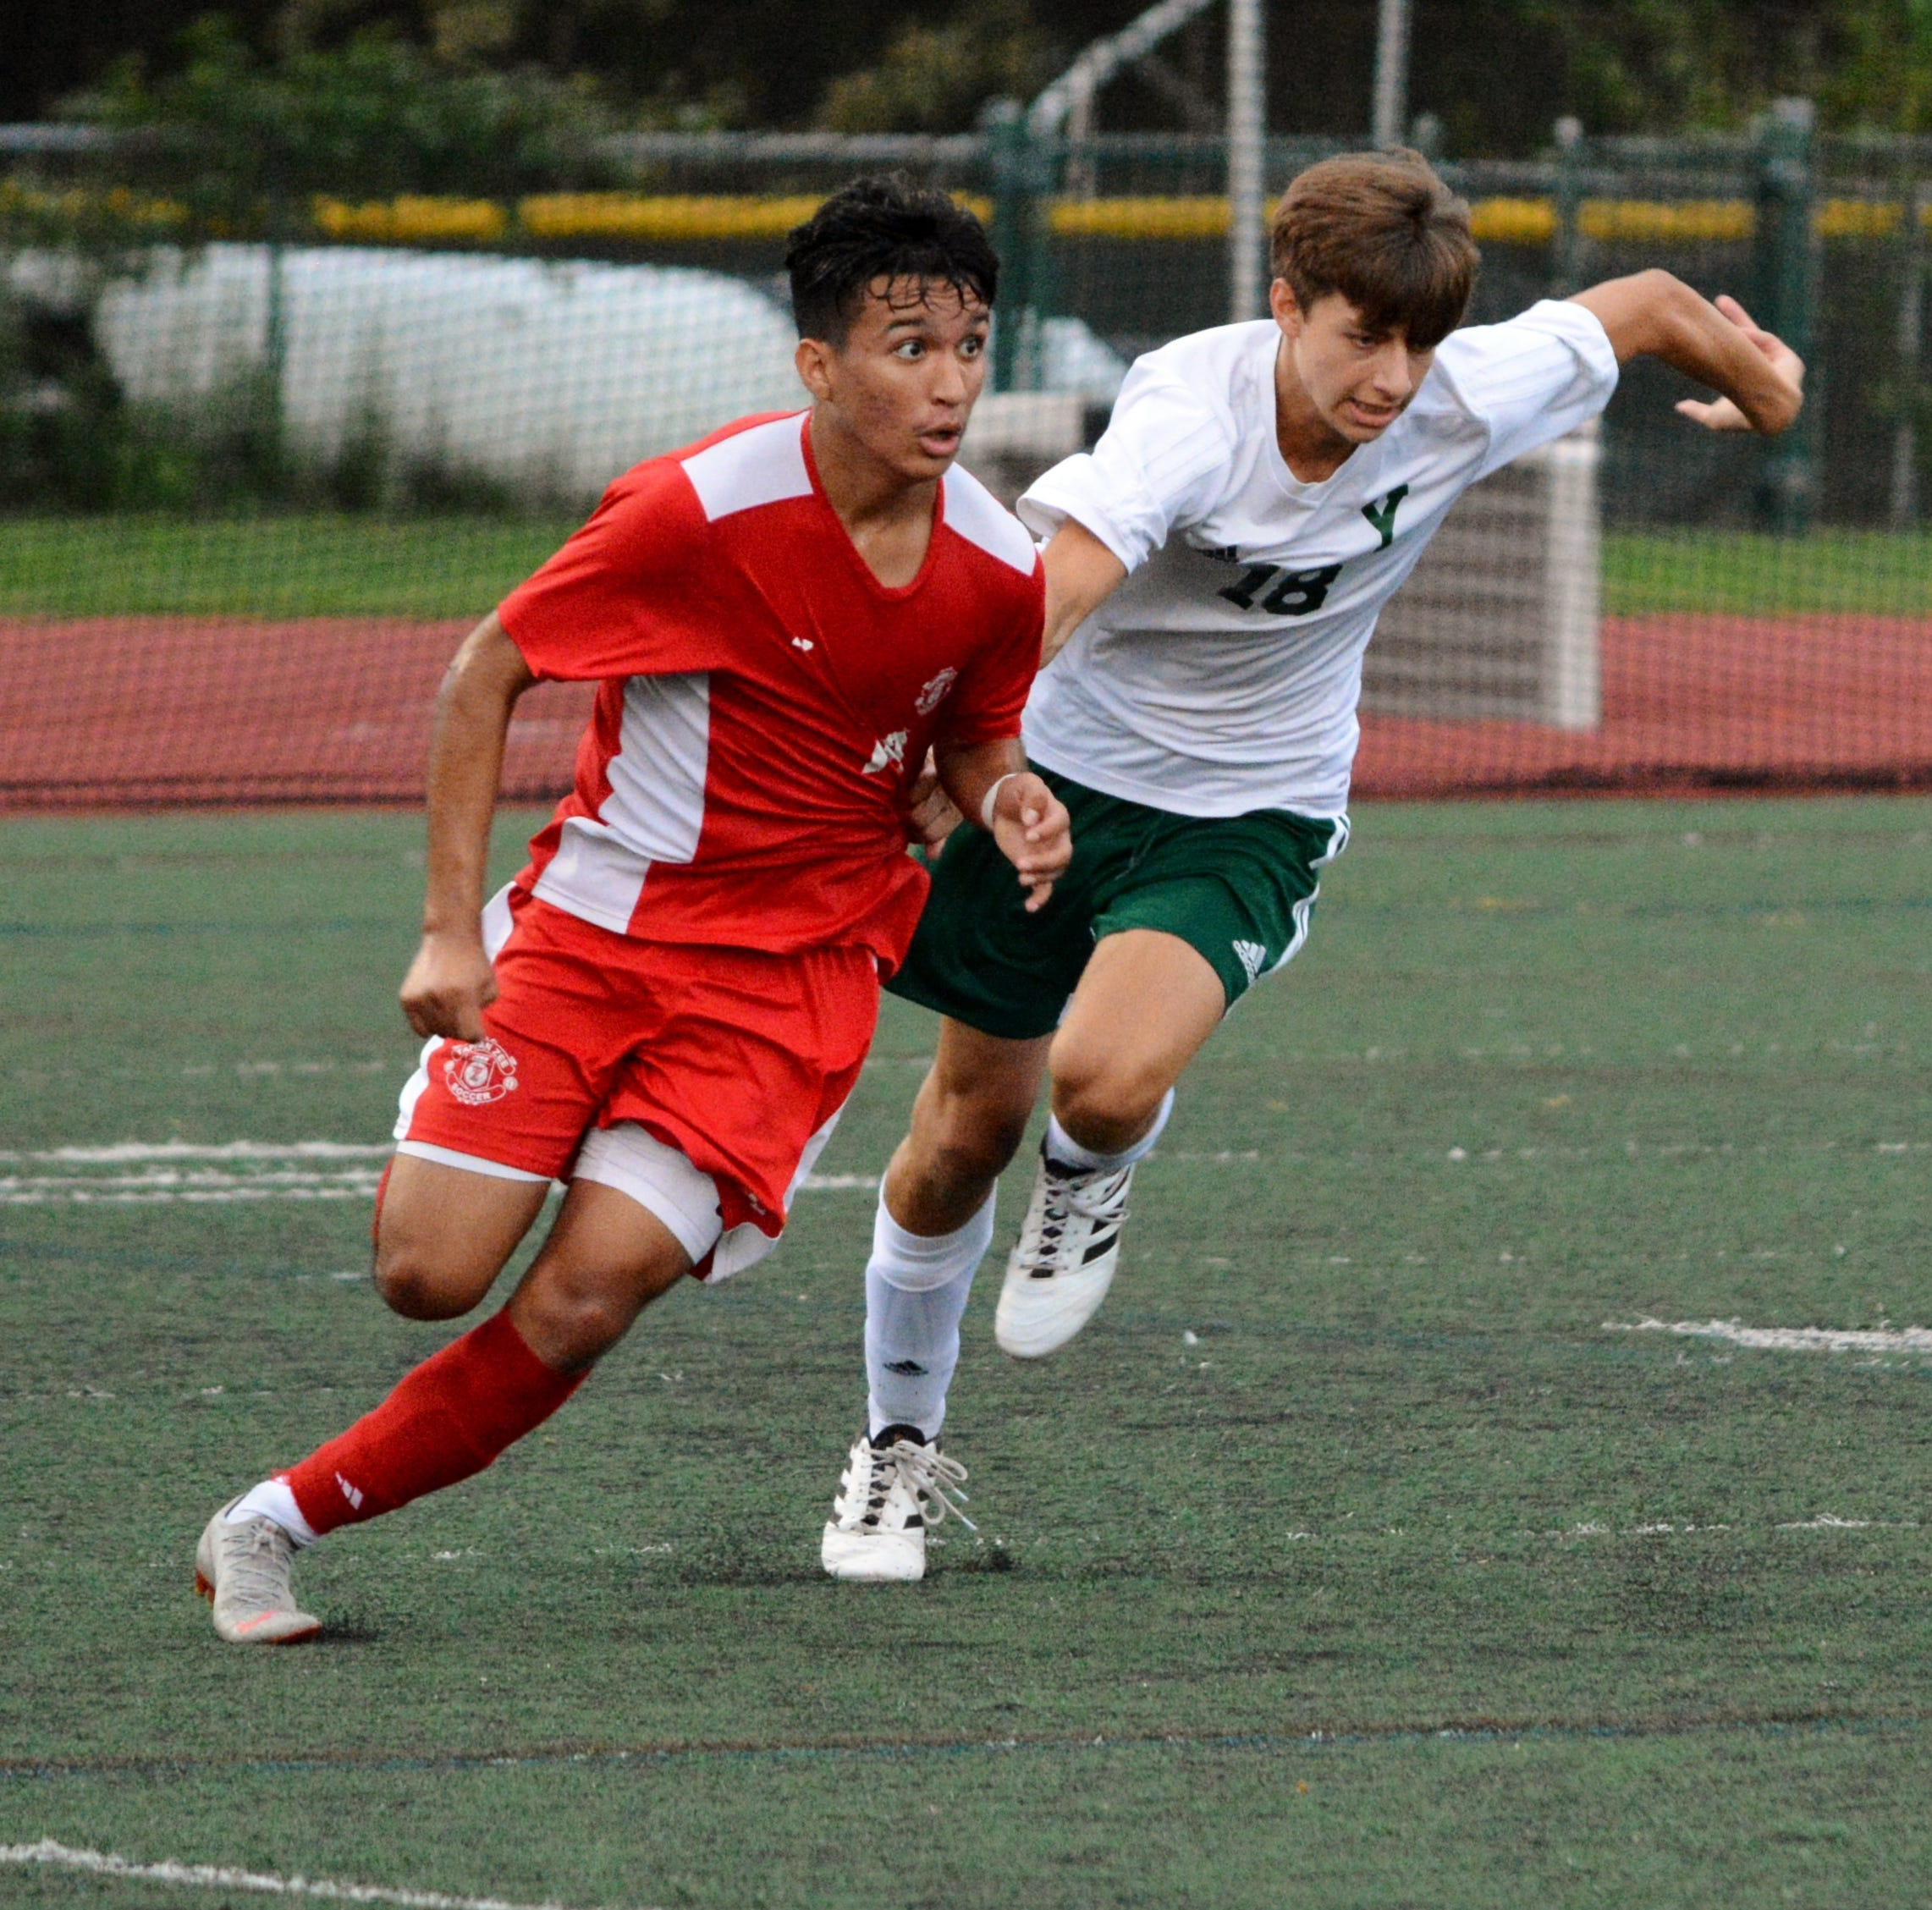 Boys soccer: Meet the 2018 lohud all-stars in Rockland County